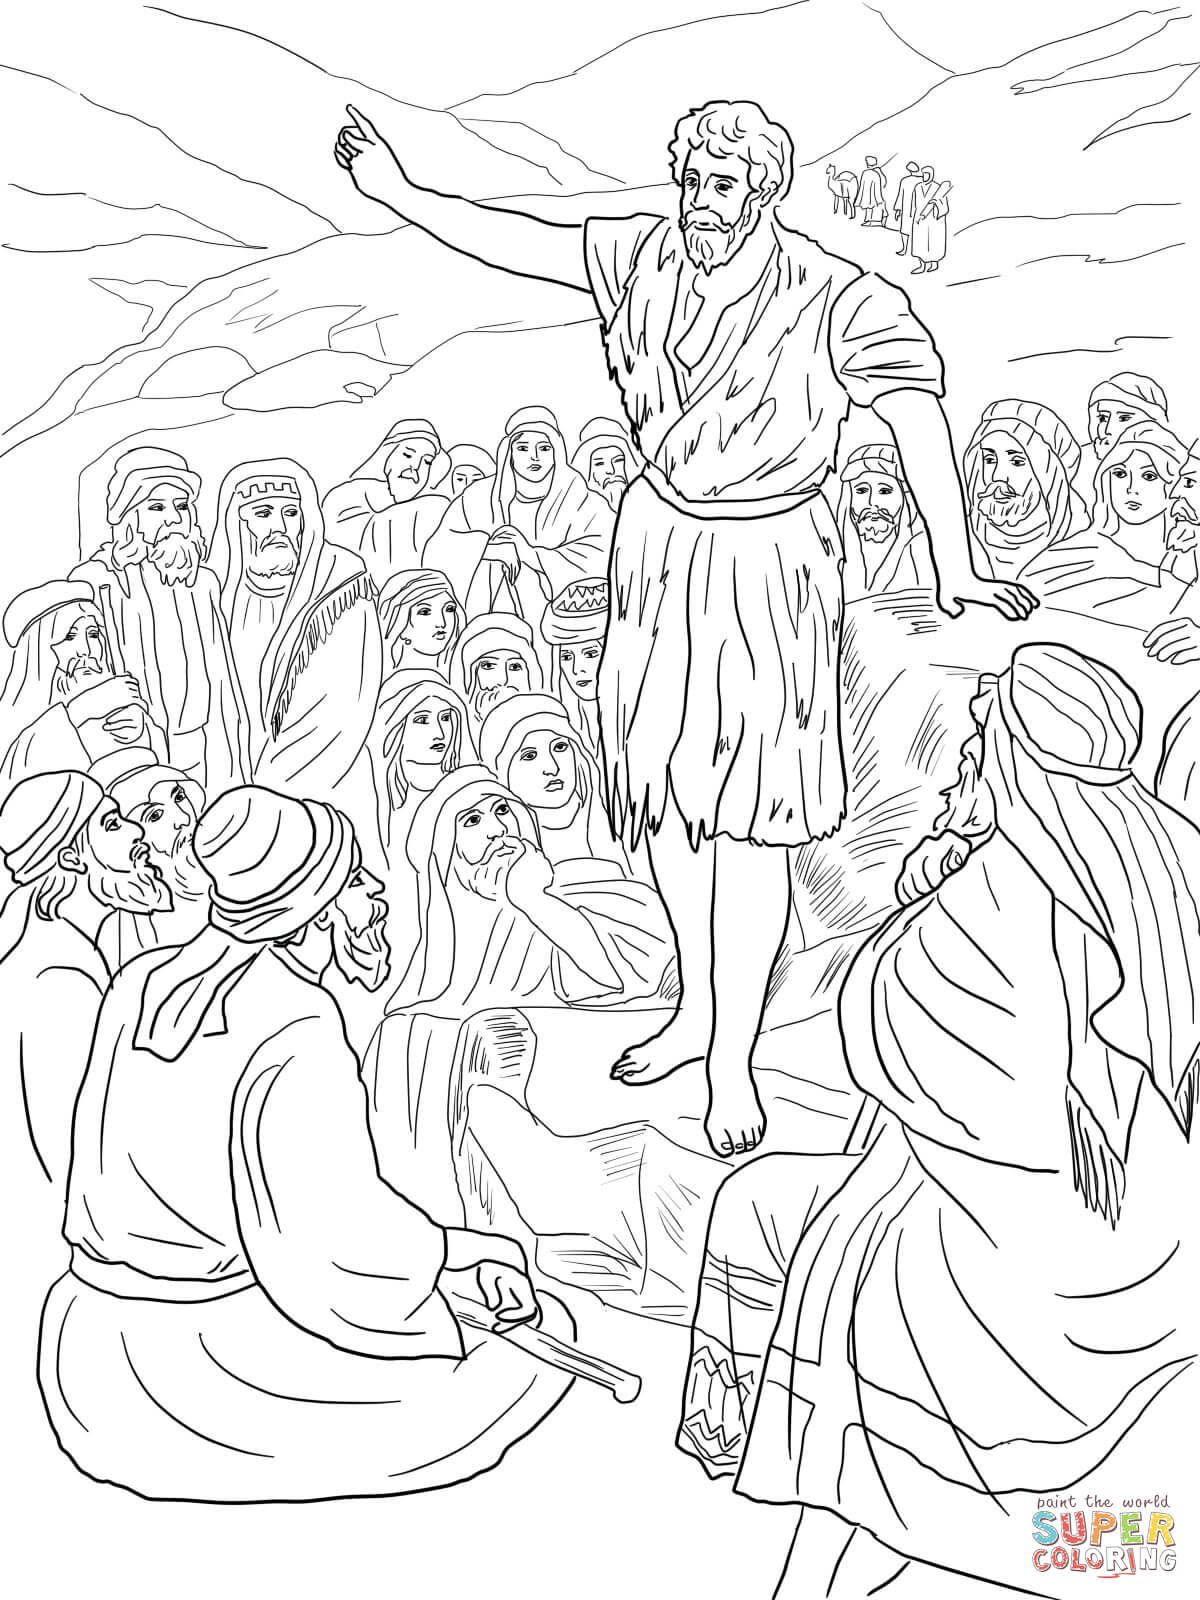 Coloring Page For Zechariah Coloring Pages Pinterest